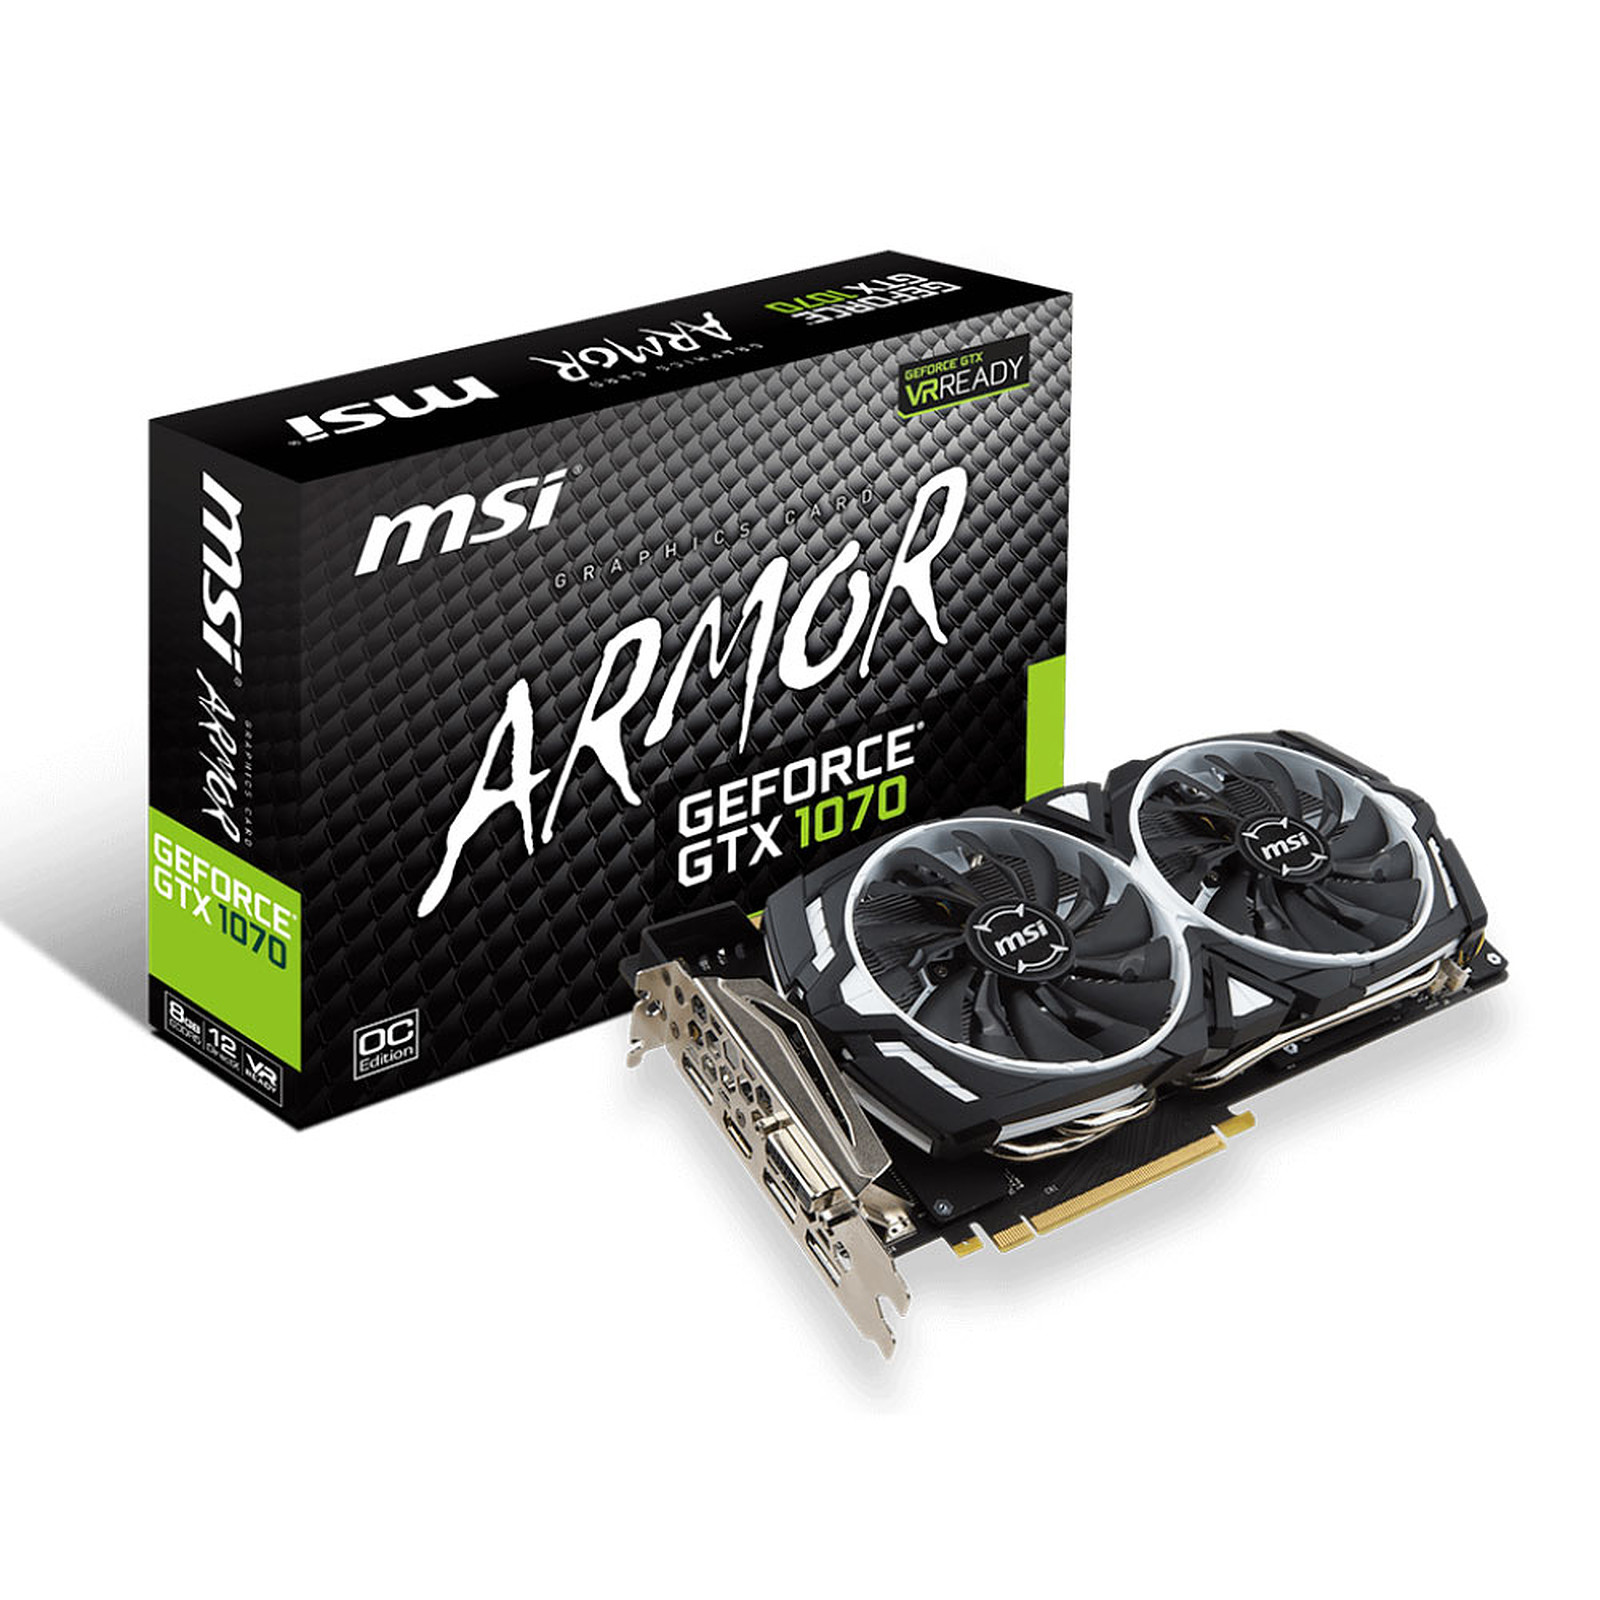 MSI GeForce GTX 1070 ARMOR 8G OC